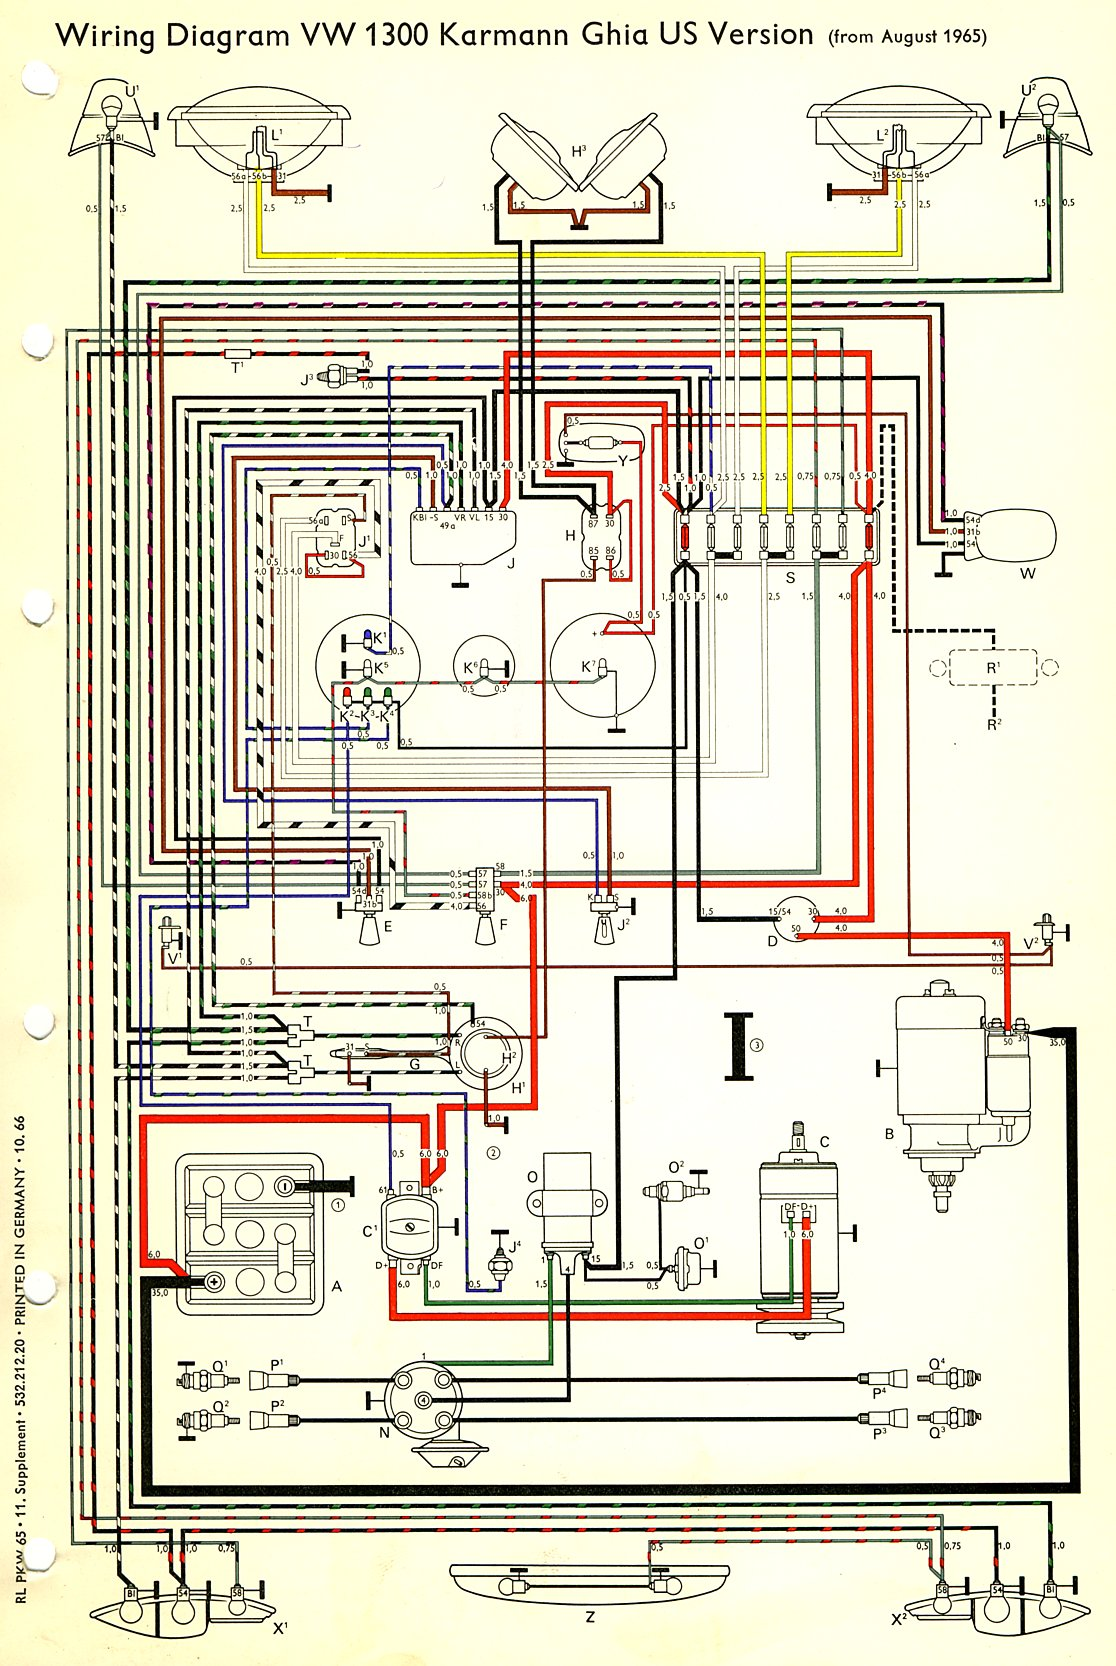 ghia_66_USA porsche 356 wiring diagram 914 brake diagram \u2022 wiring diagrams j 1957 vw beetle wiring diagram at bayanpartner.co